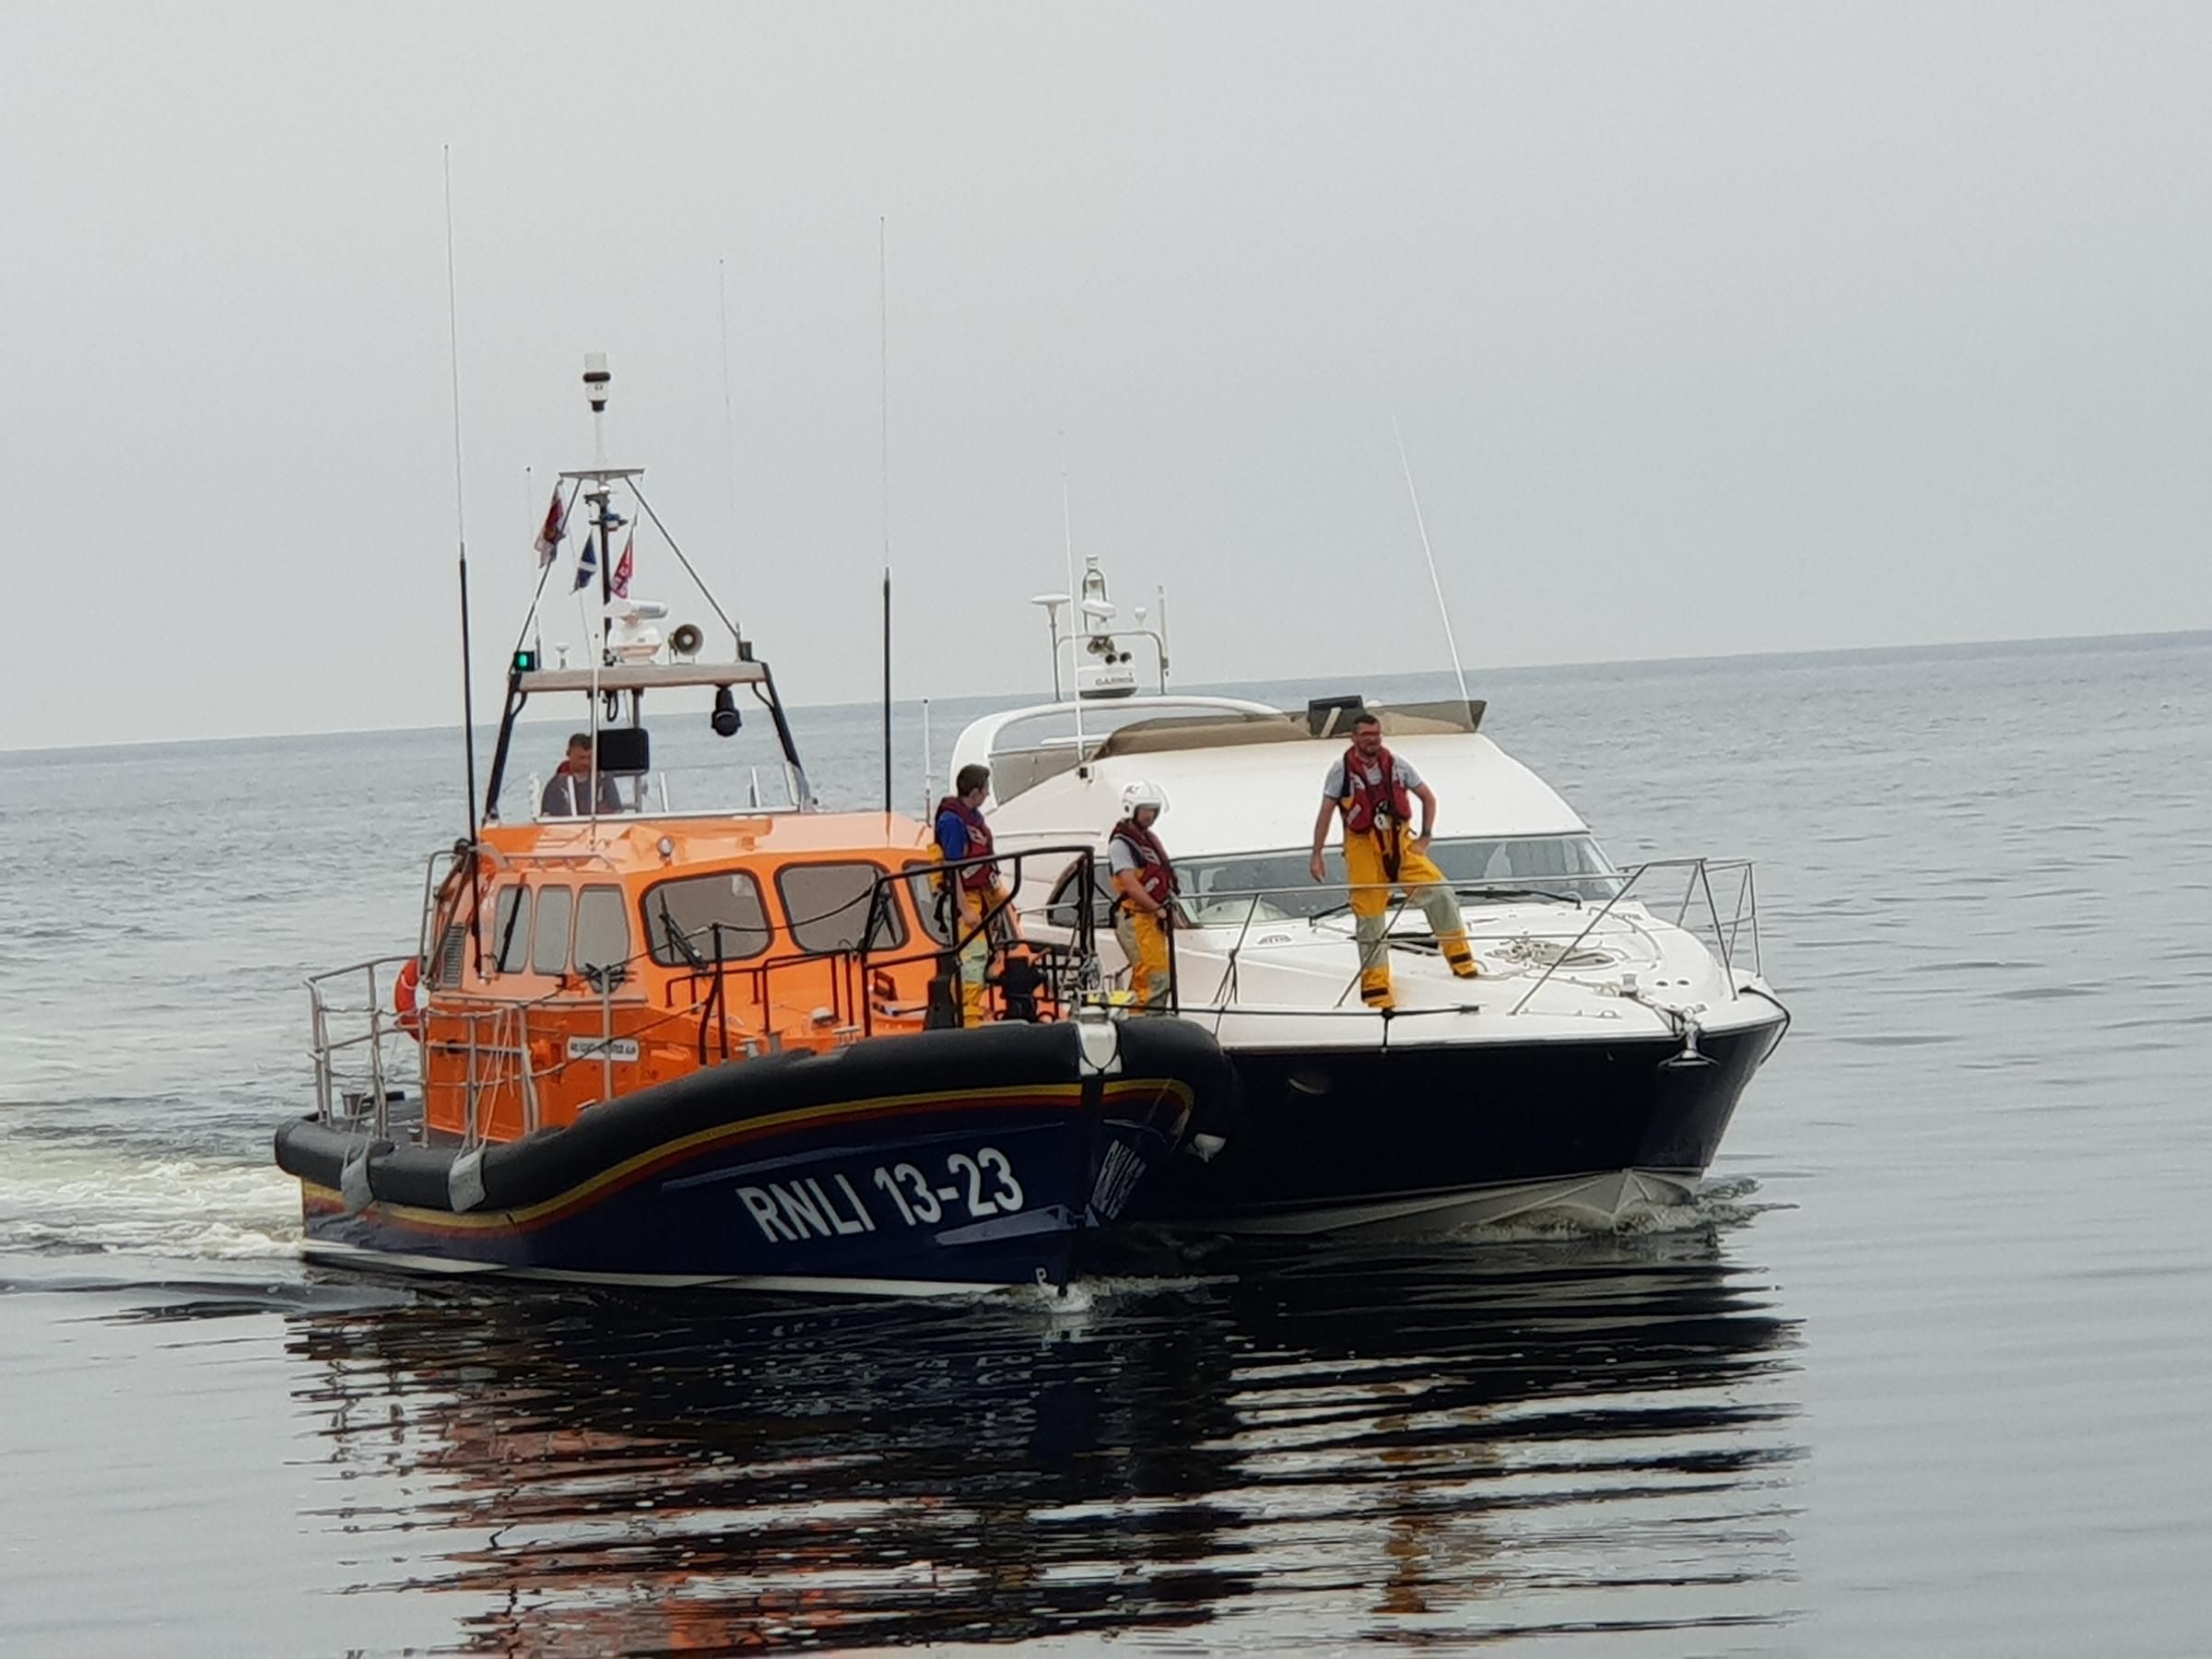 Girvan's new lifeboat on its maiden callout